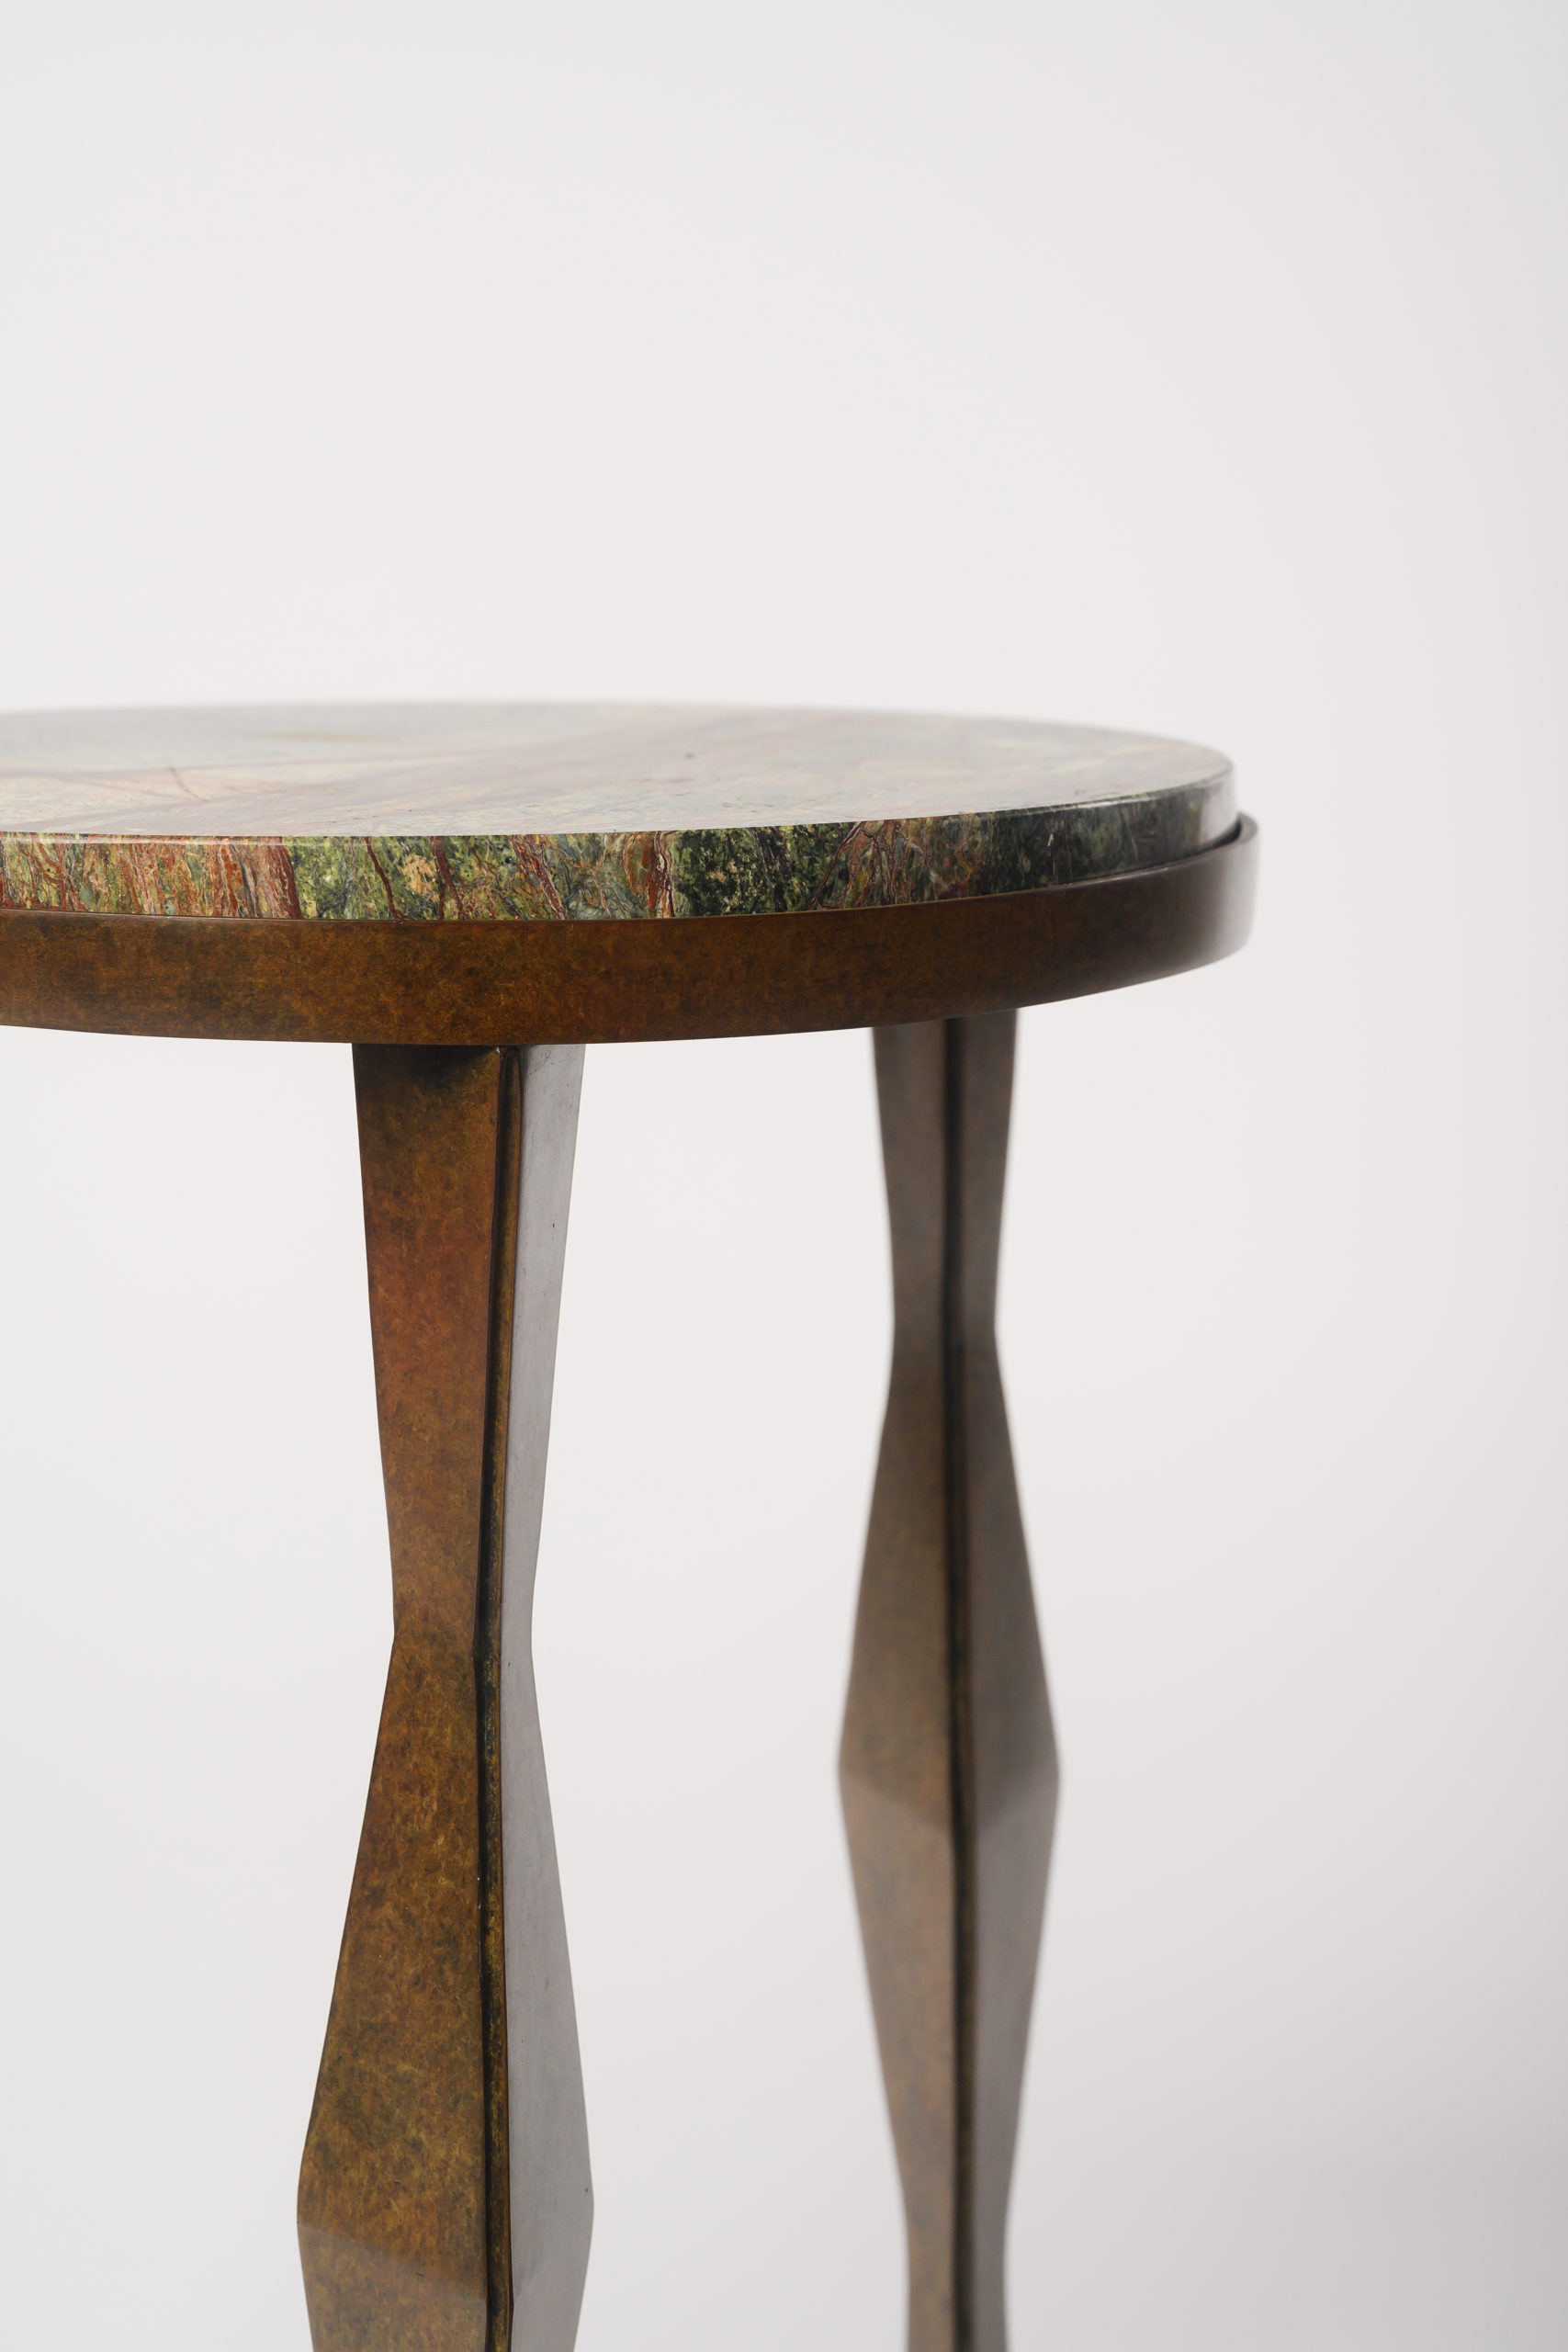 NYDC_WNWN_products_david_sutherland_Arthur_side_table_BEE_4967